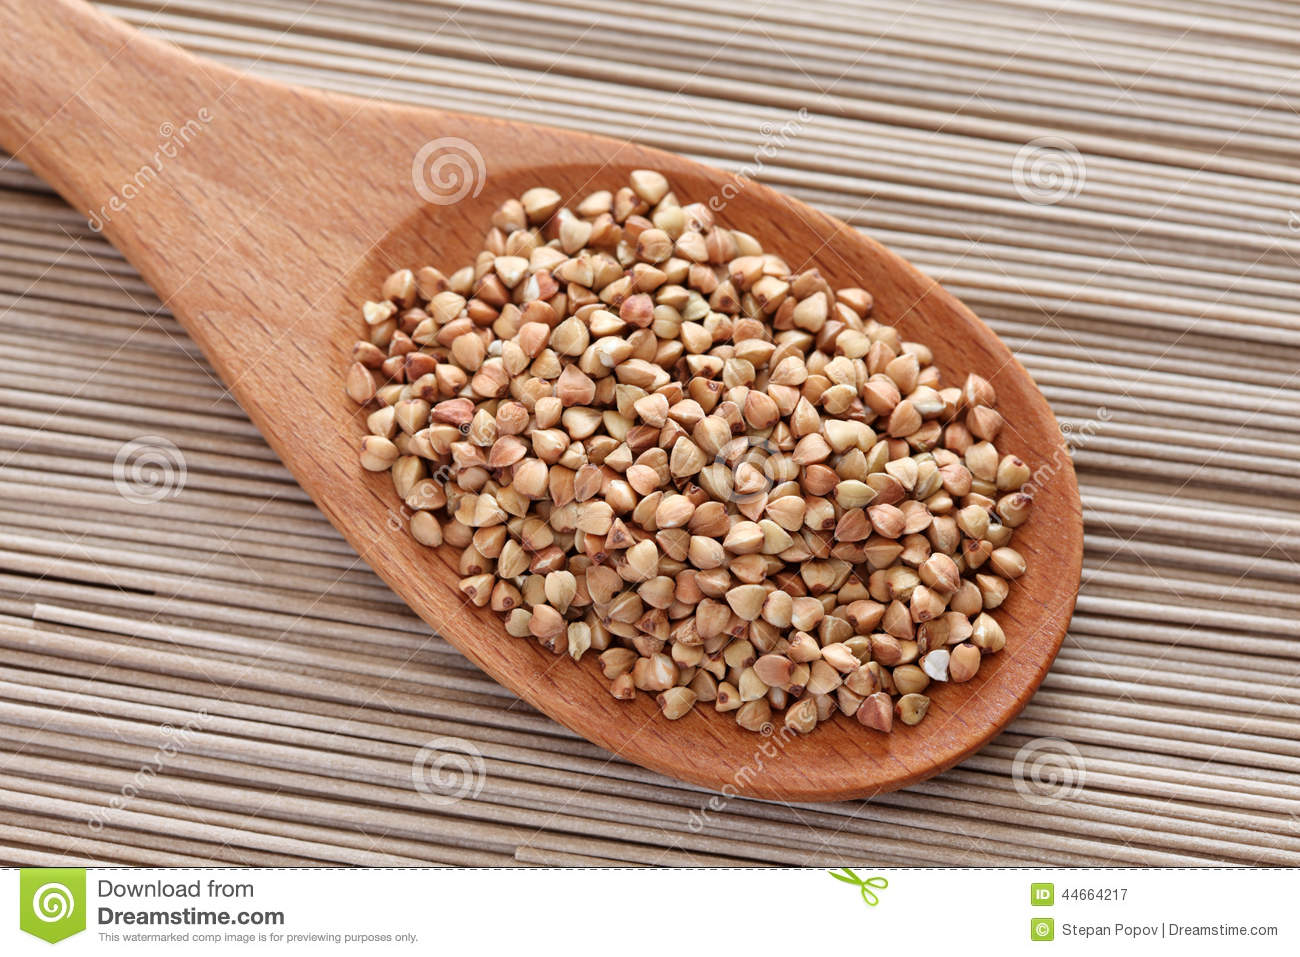 Buckwheat in a wooden spoon on soba noodles background